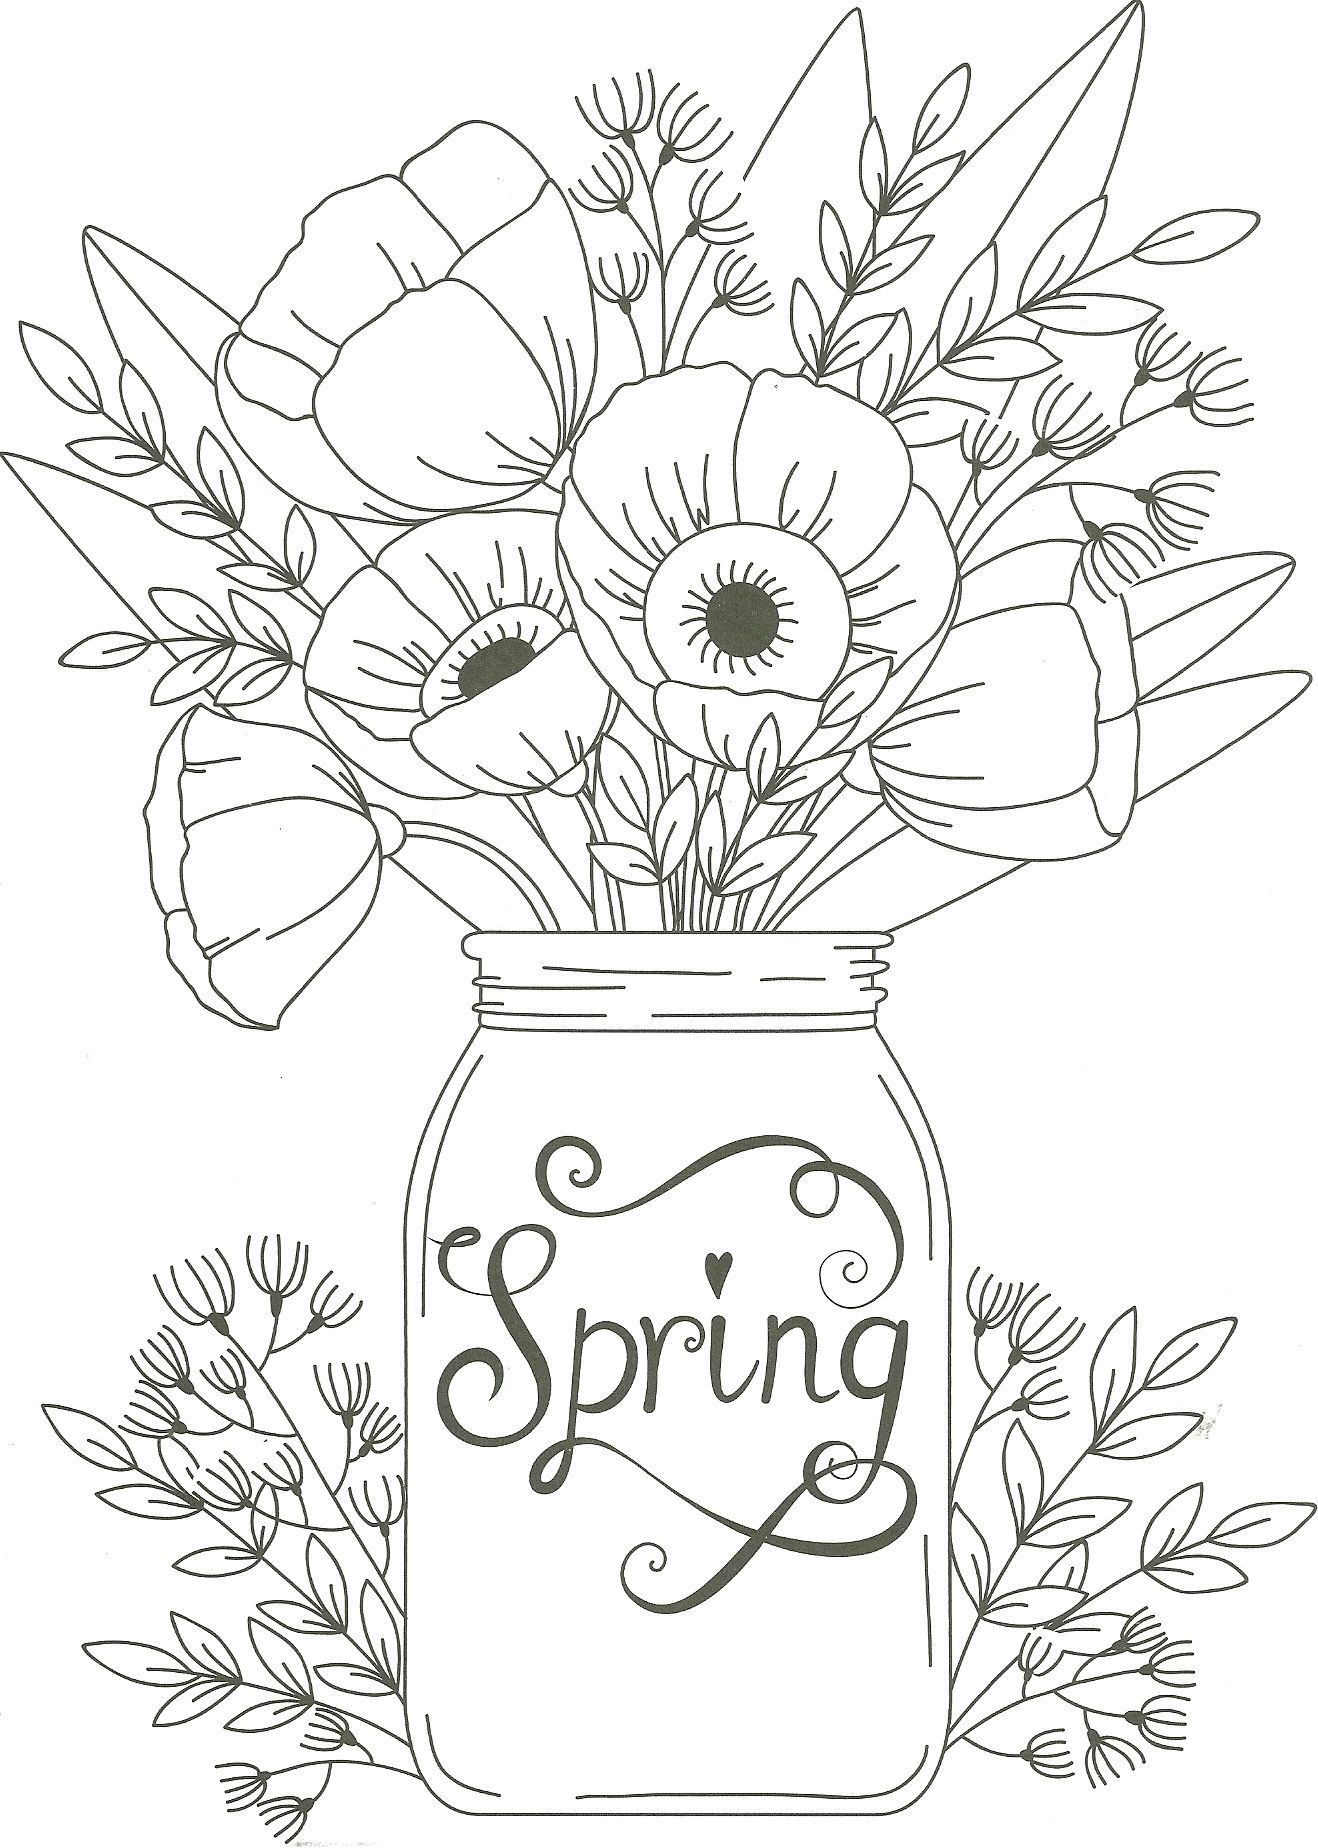 Spring Mason Jar Floral Coloring Page With Images